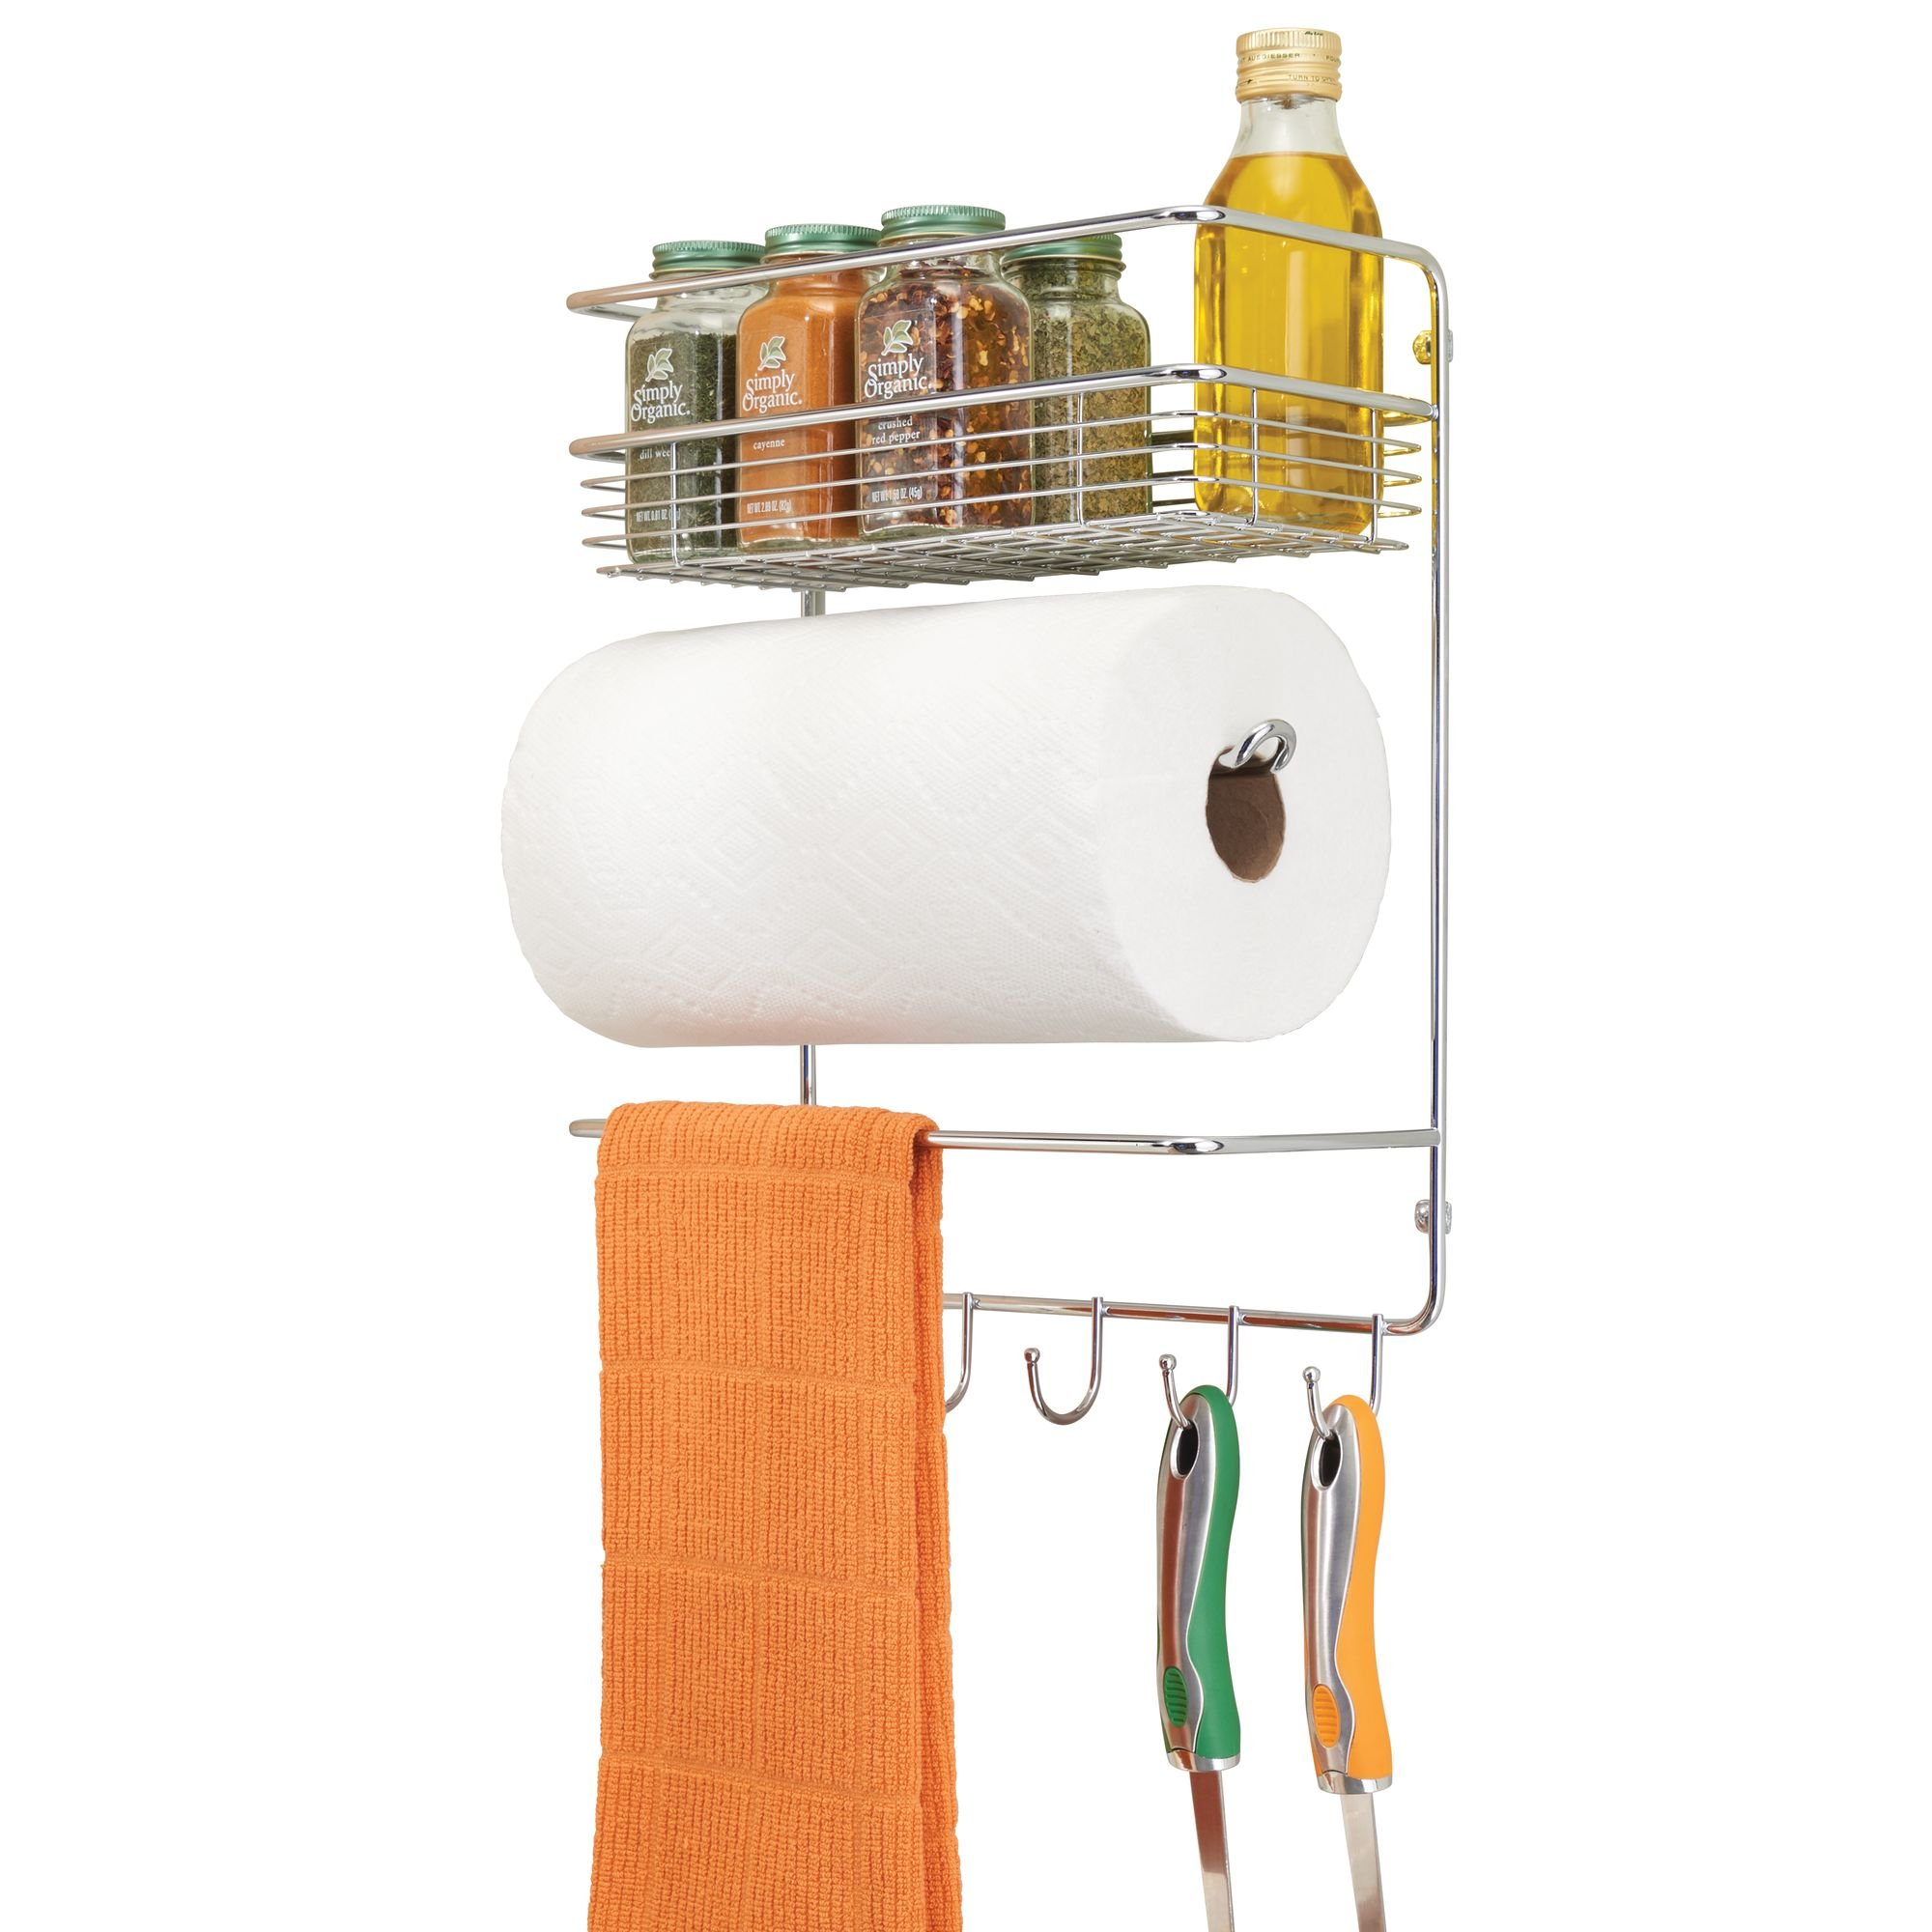 mDesign Wall Mount Paper Towel Holder with Storage Shelf and Storage Hooks for Kitchen, Pantry, Laundry, Garage Organization - Strong Steel Wire with Chrome Finish